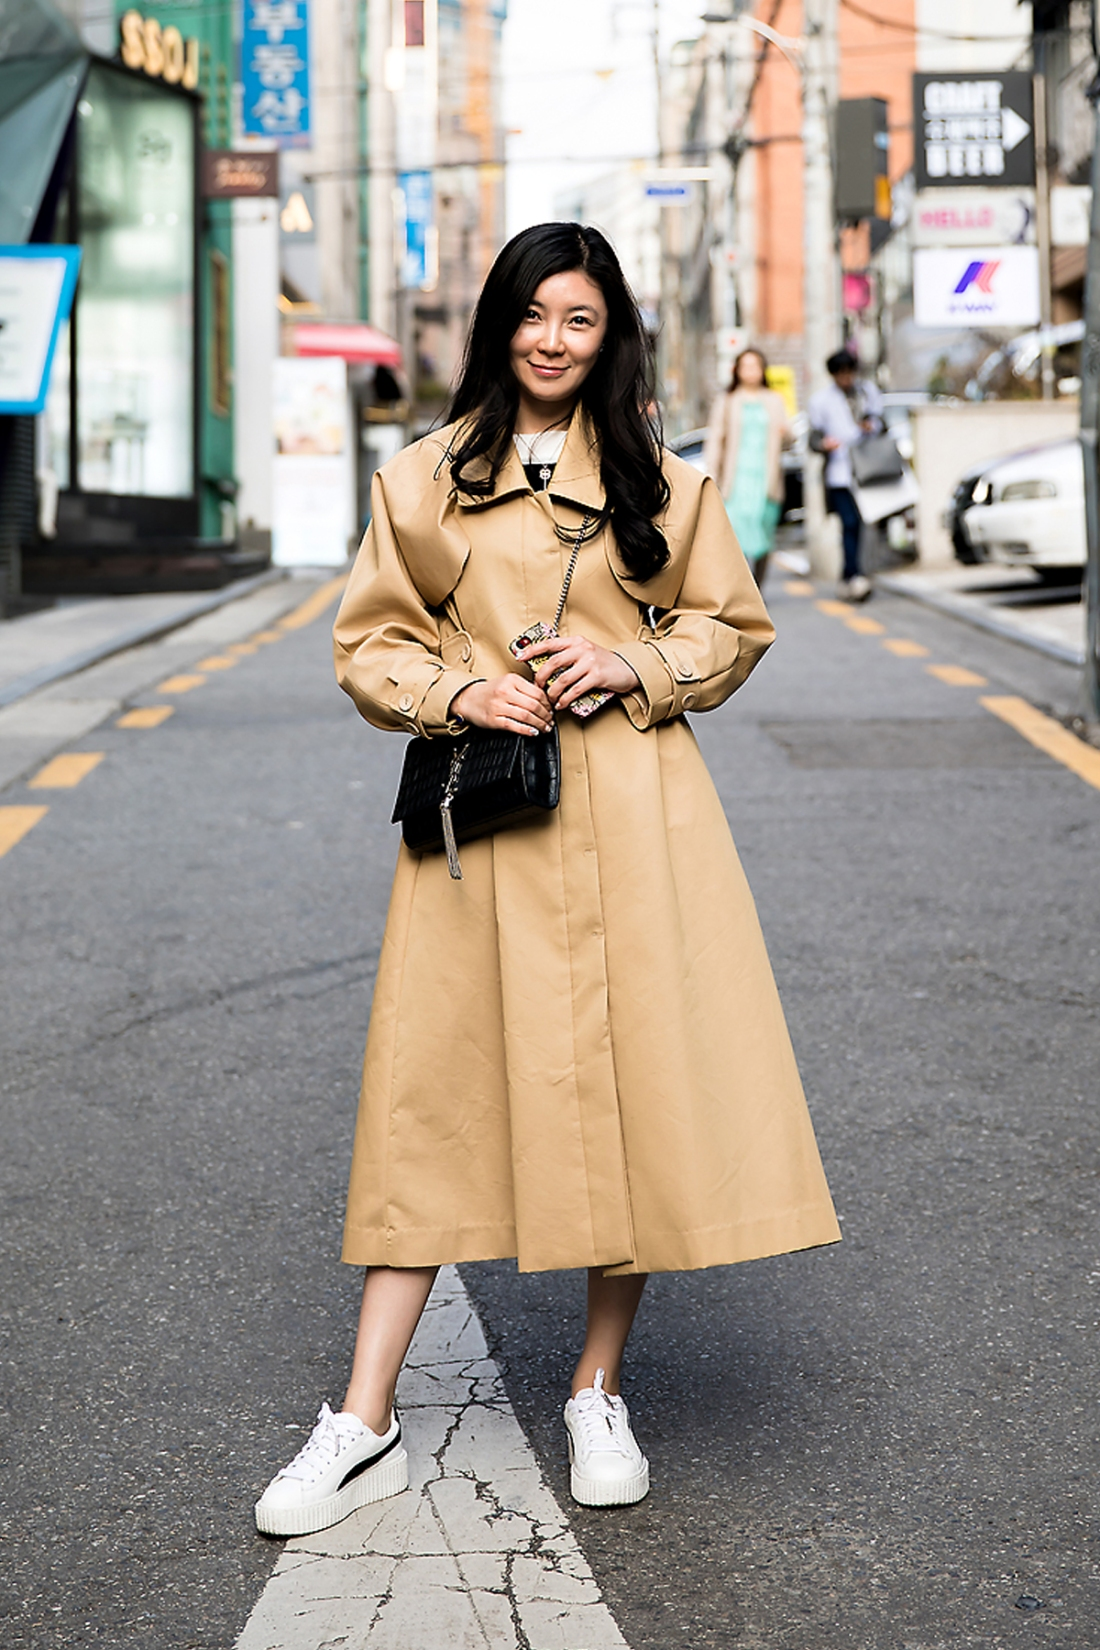 Piao Meiling, Street Fashion 2017 in Seoul.jpg